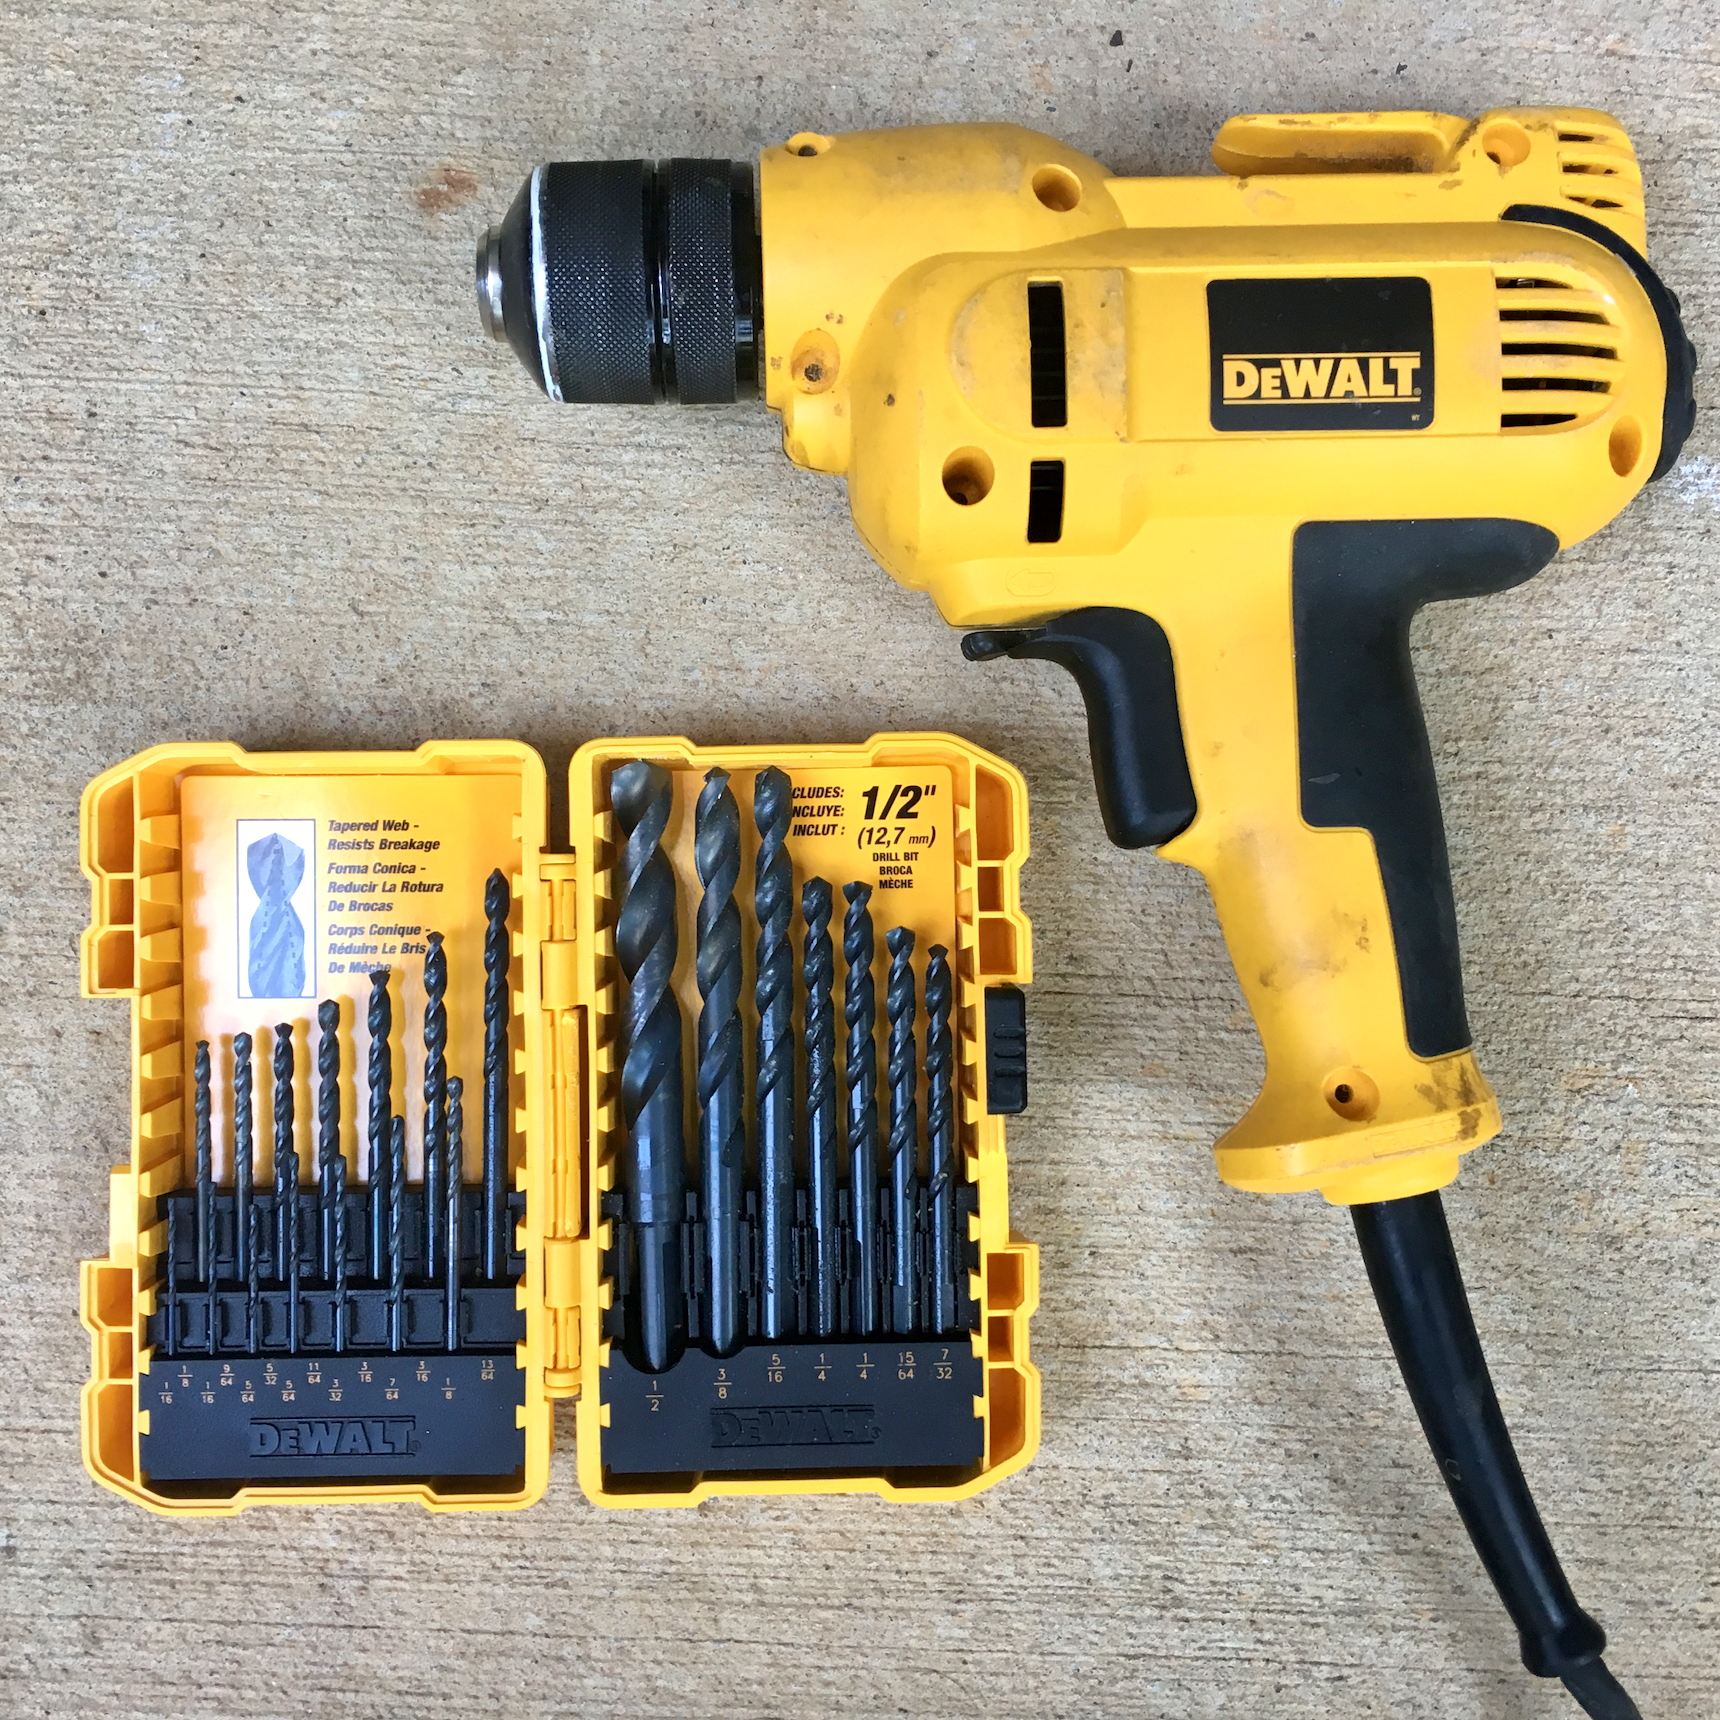 Justin's drill and a set of bits. Bits should be considered expendable. They break, get dull, and get lost, so don't spend a fortune on top-quality bits unless you really need them.